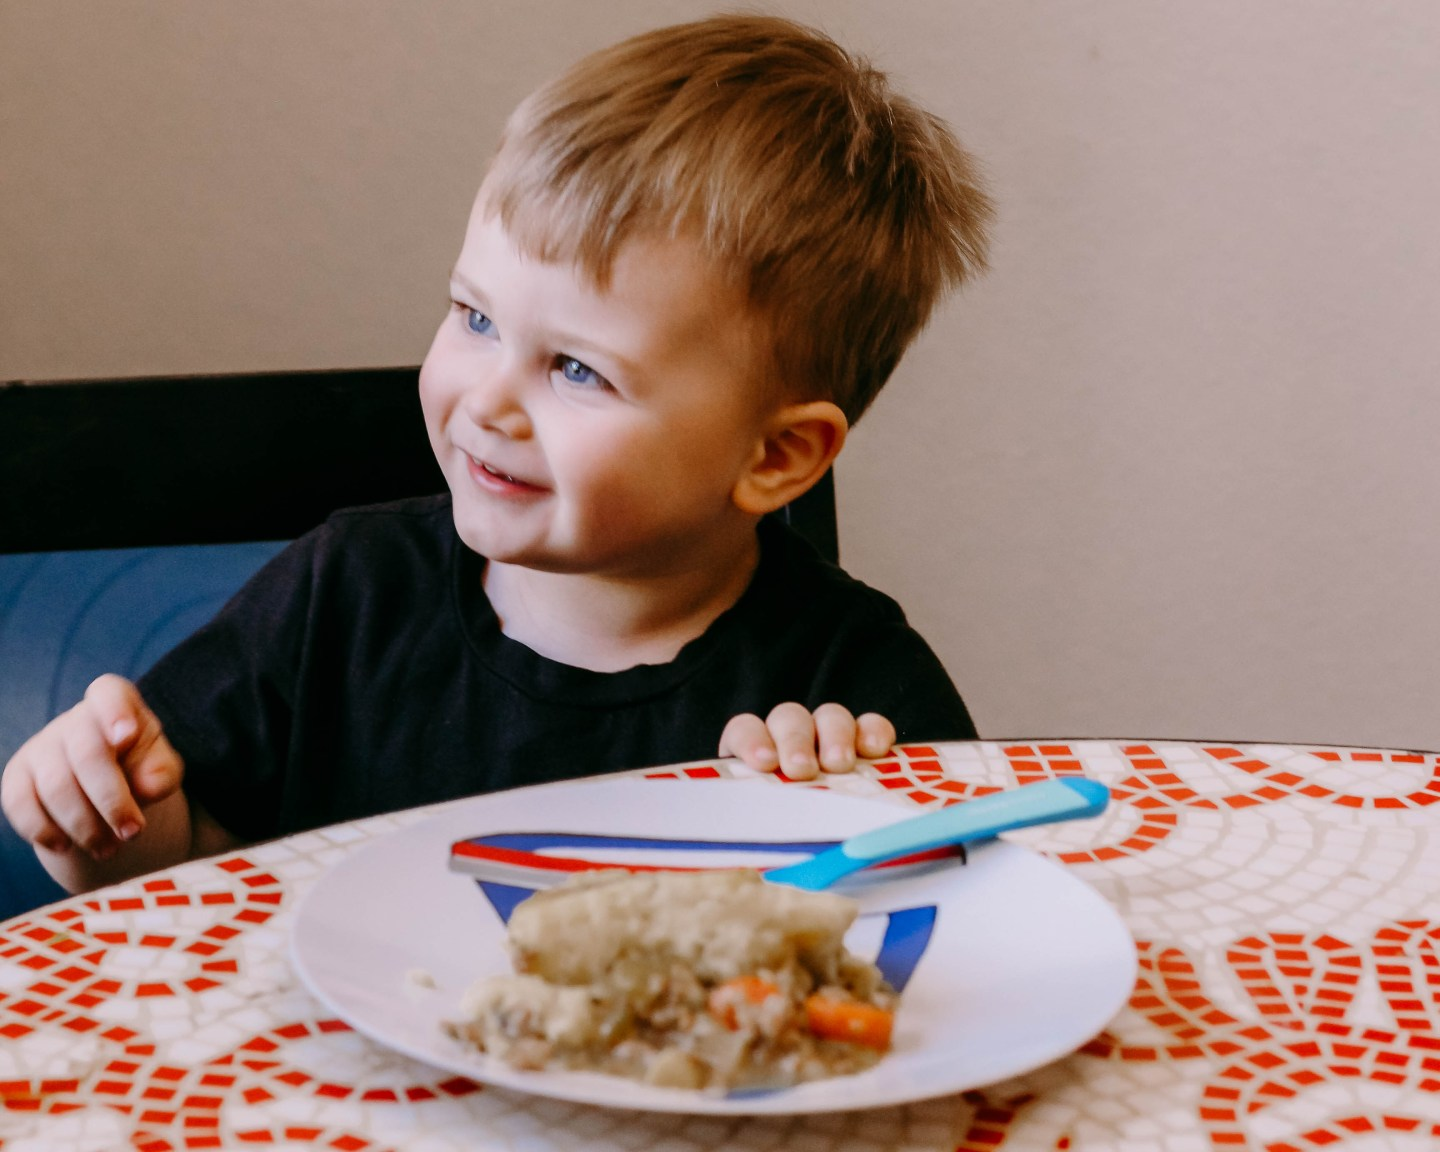 Cooking with a Toddler: How to Make This Shepherd's Pie Recipe